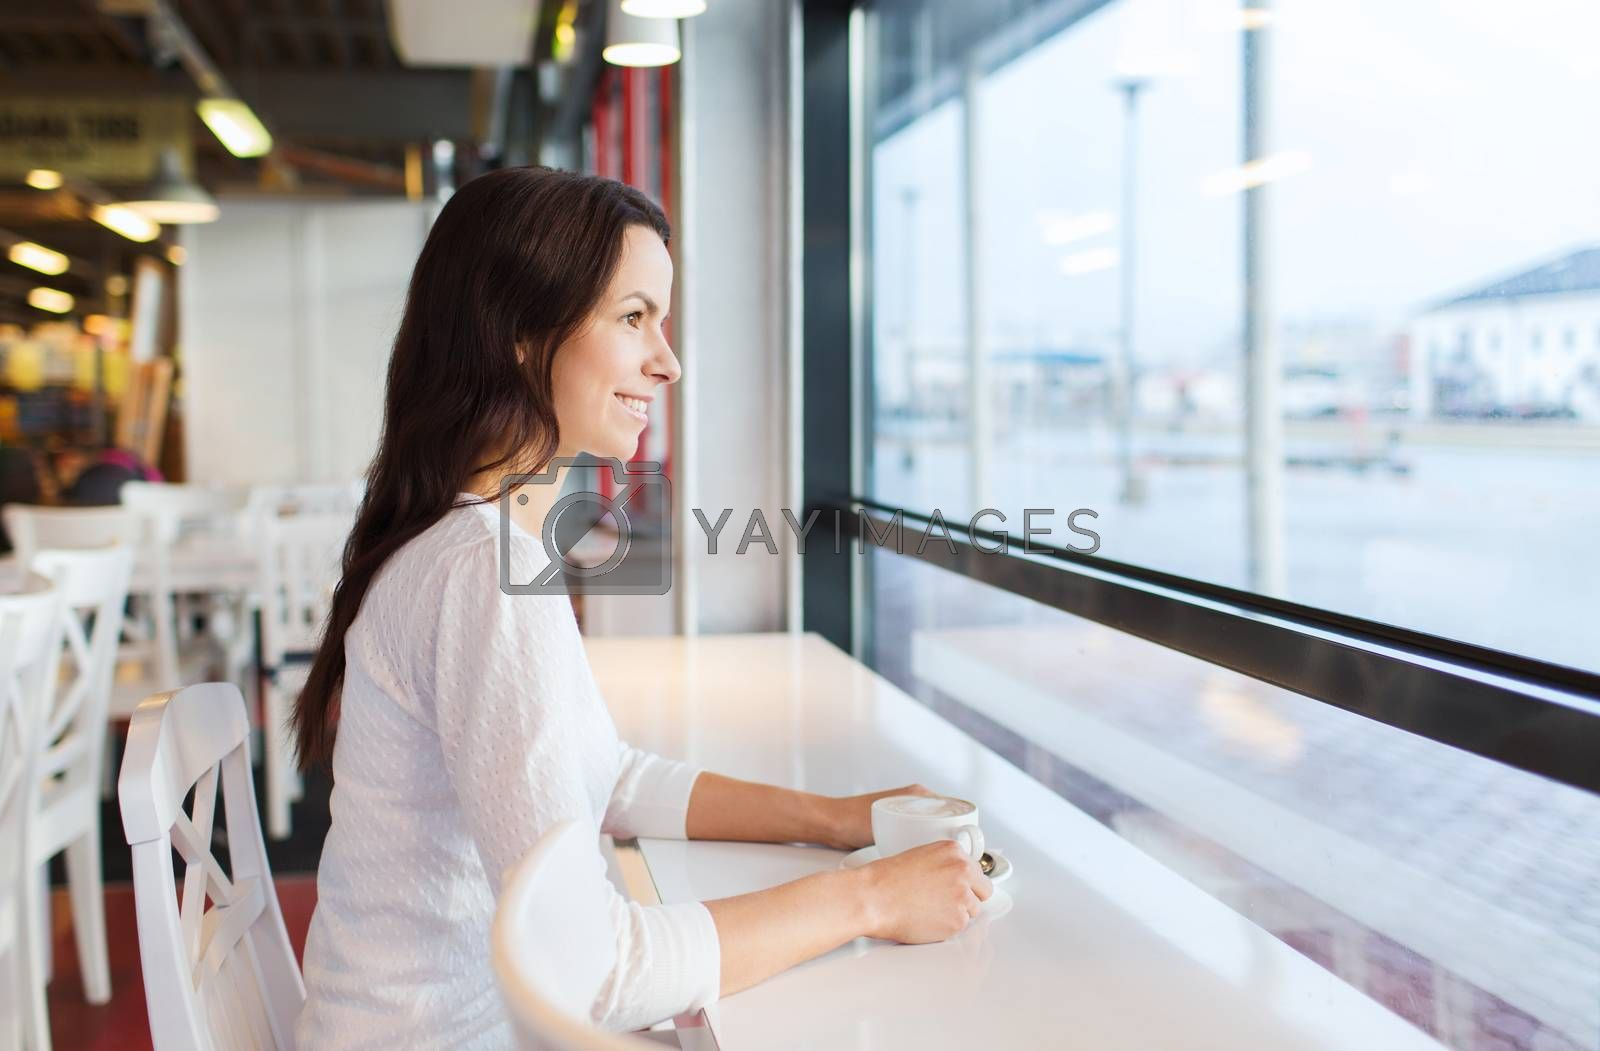 leisure, drinks, people and lifestyle concept - smiling young woman drinking coffee at cafe